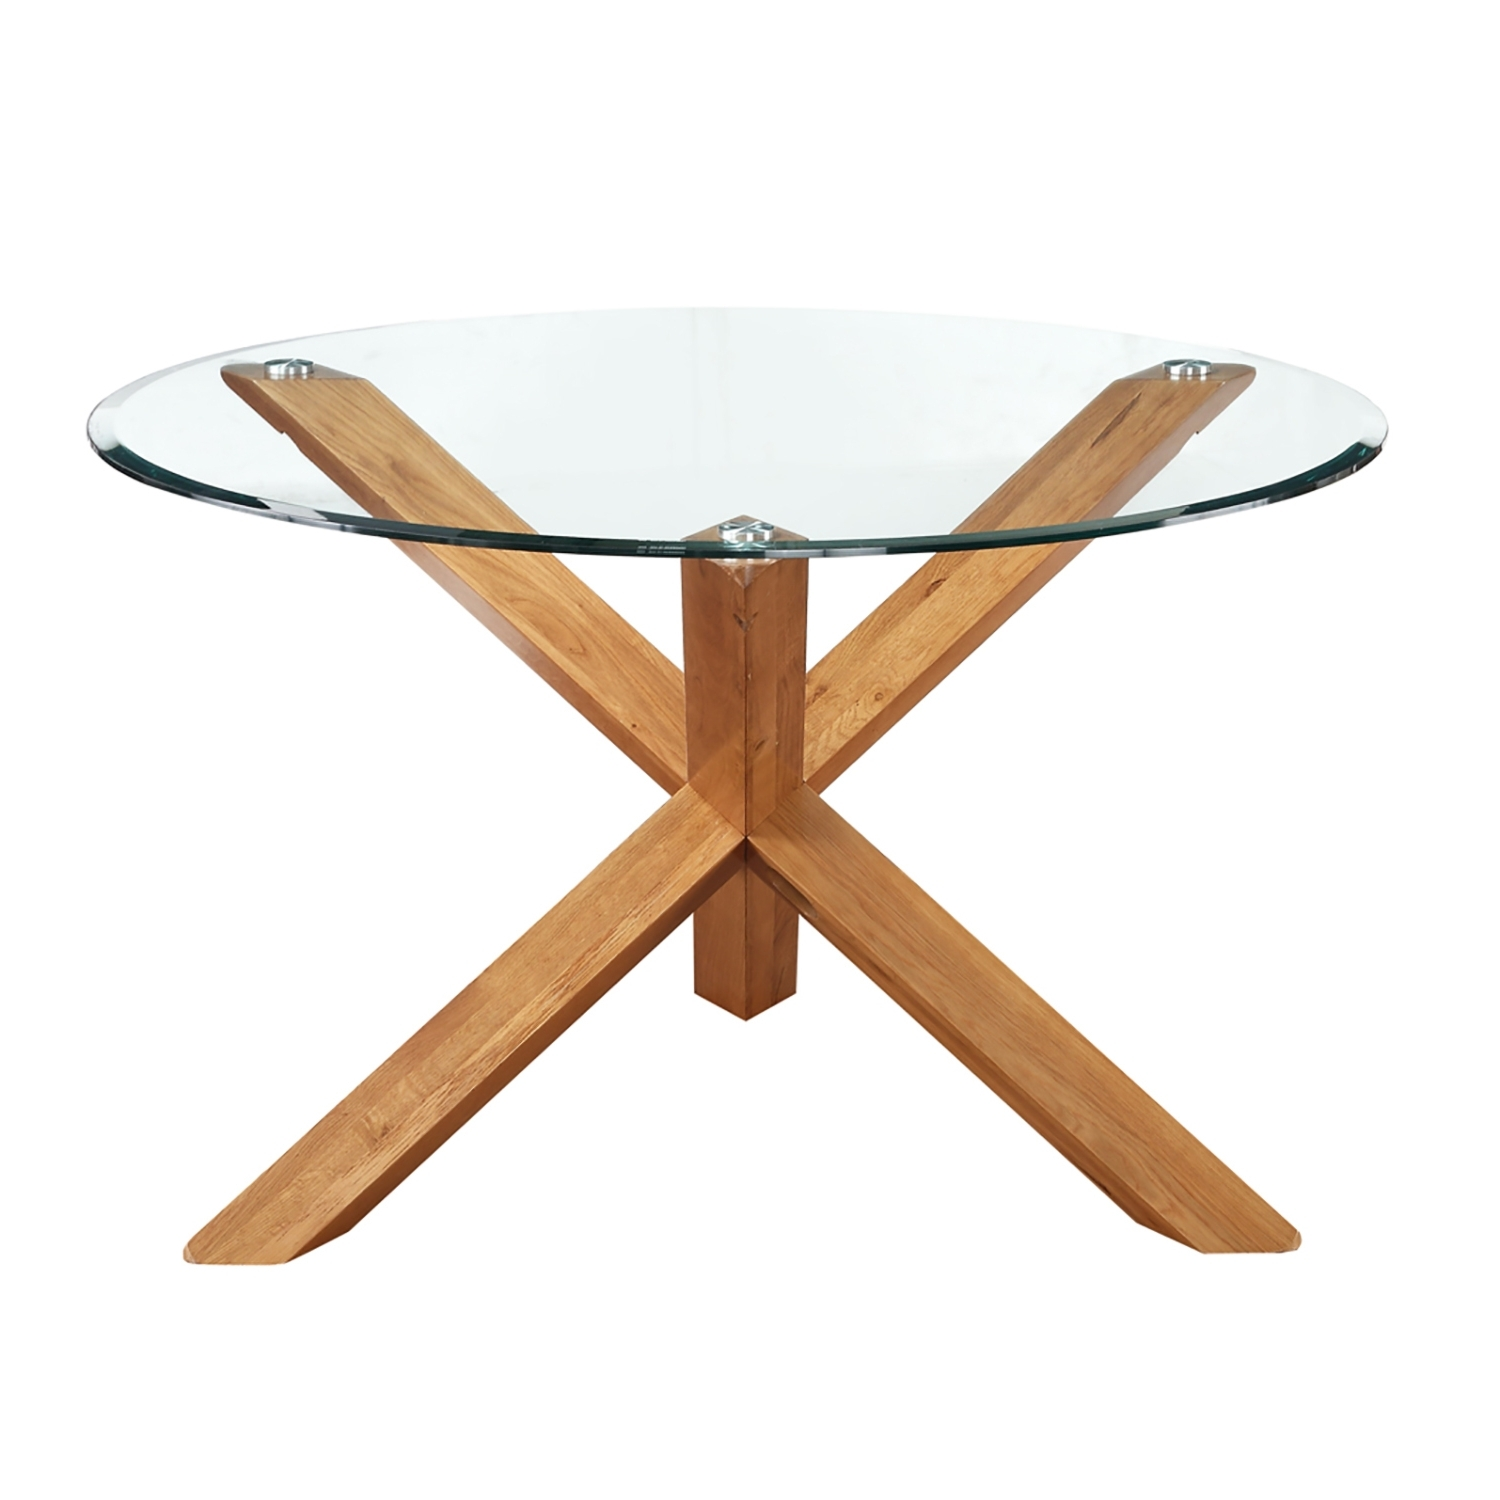 Preferred Round Glass Dining Tables With Oak Legs With Regard To Miso Solid Oak And Glass Dining Table (Gallery 9 of 25)